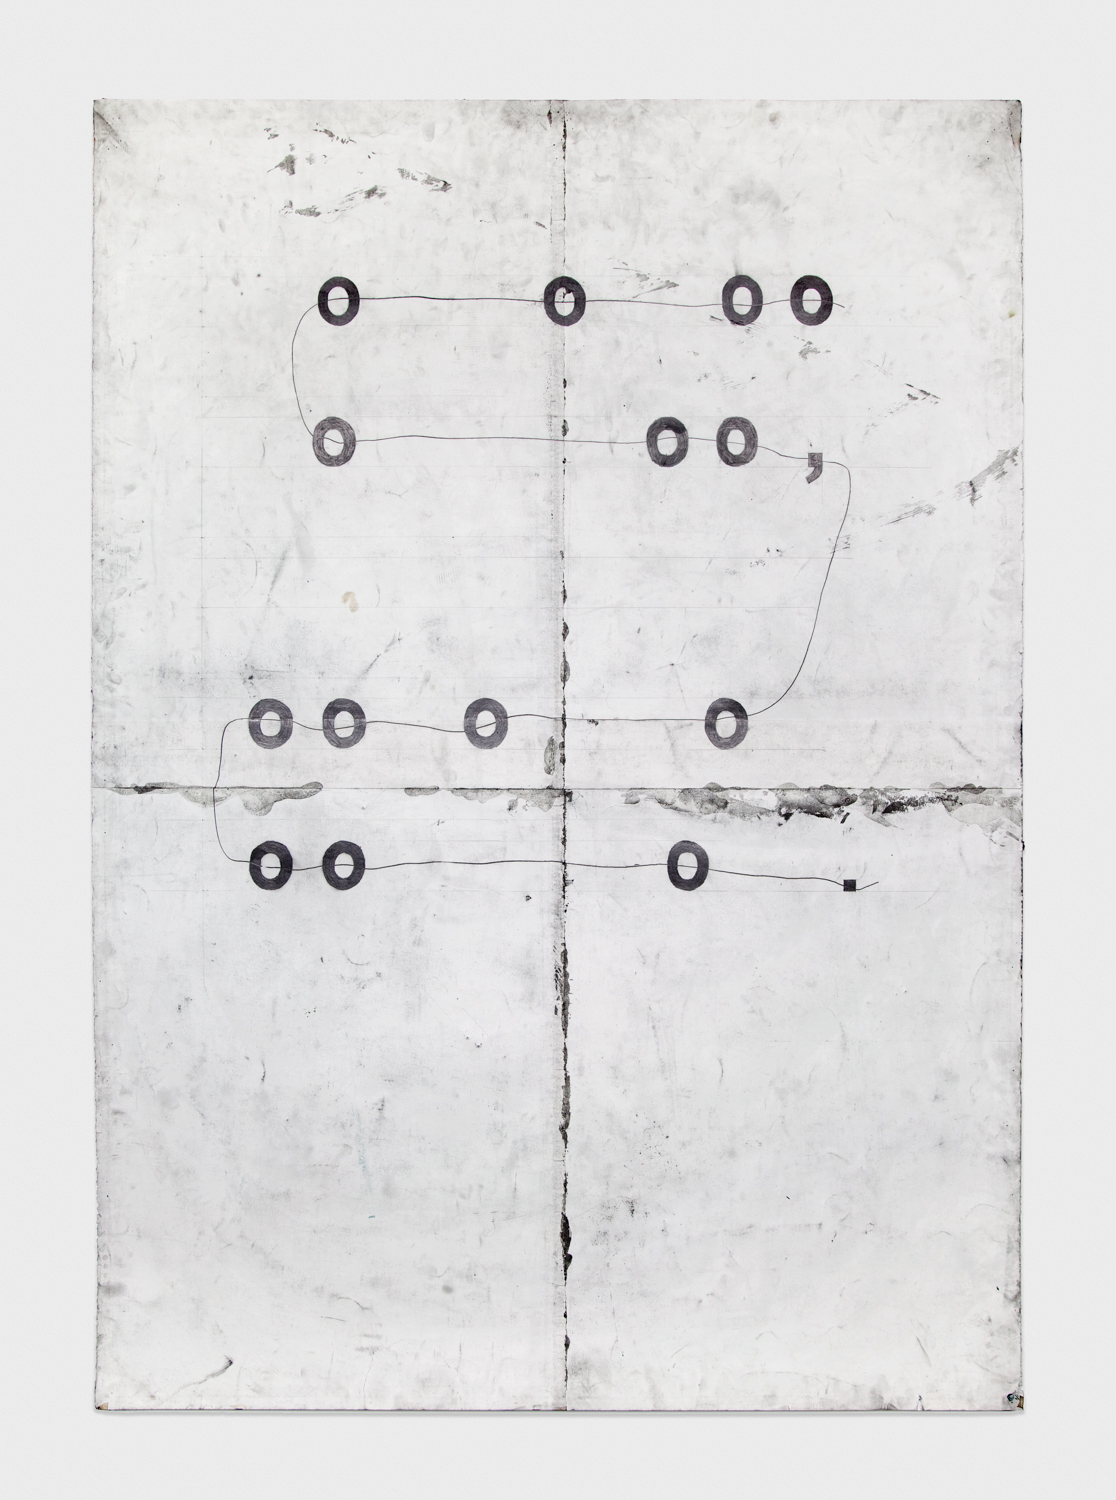 Tony Lewis  ooooooo, ooooooo.  2011 Pencil and graphite powder on paper 84h x 60w in TL013